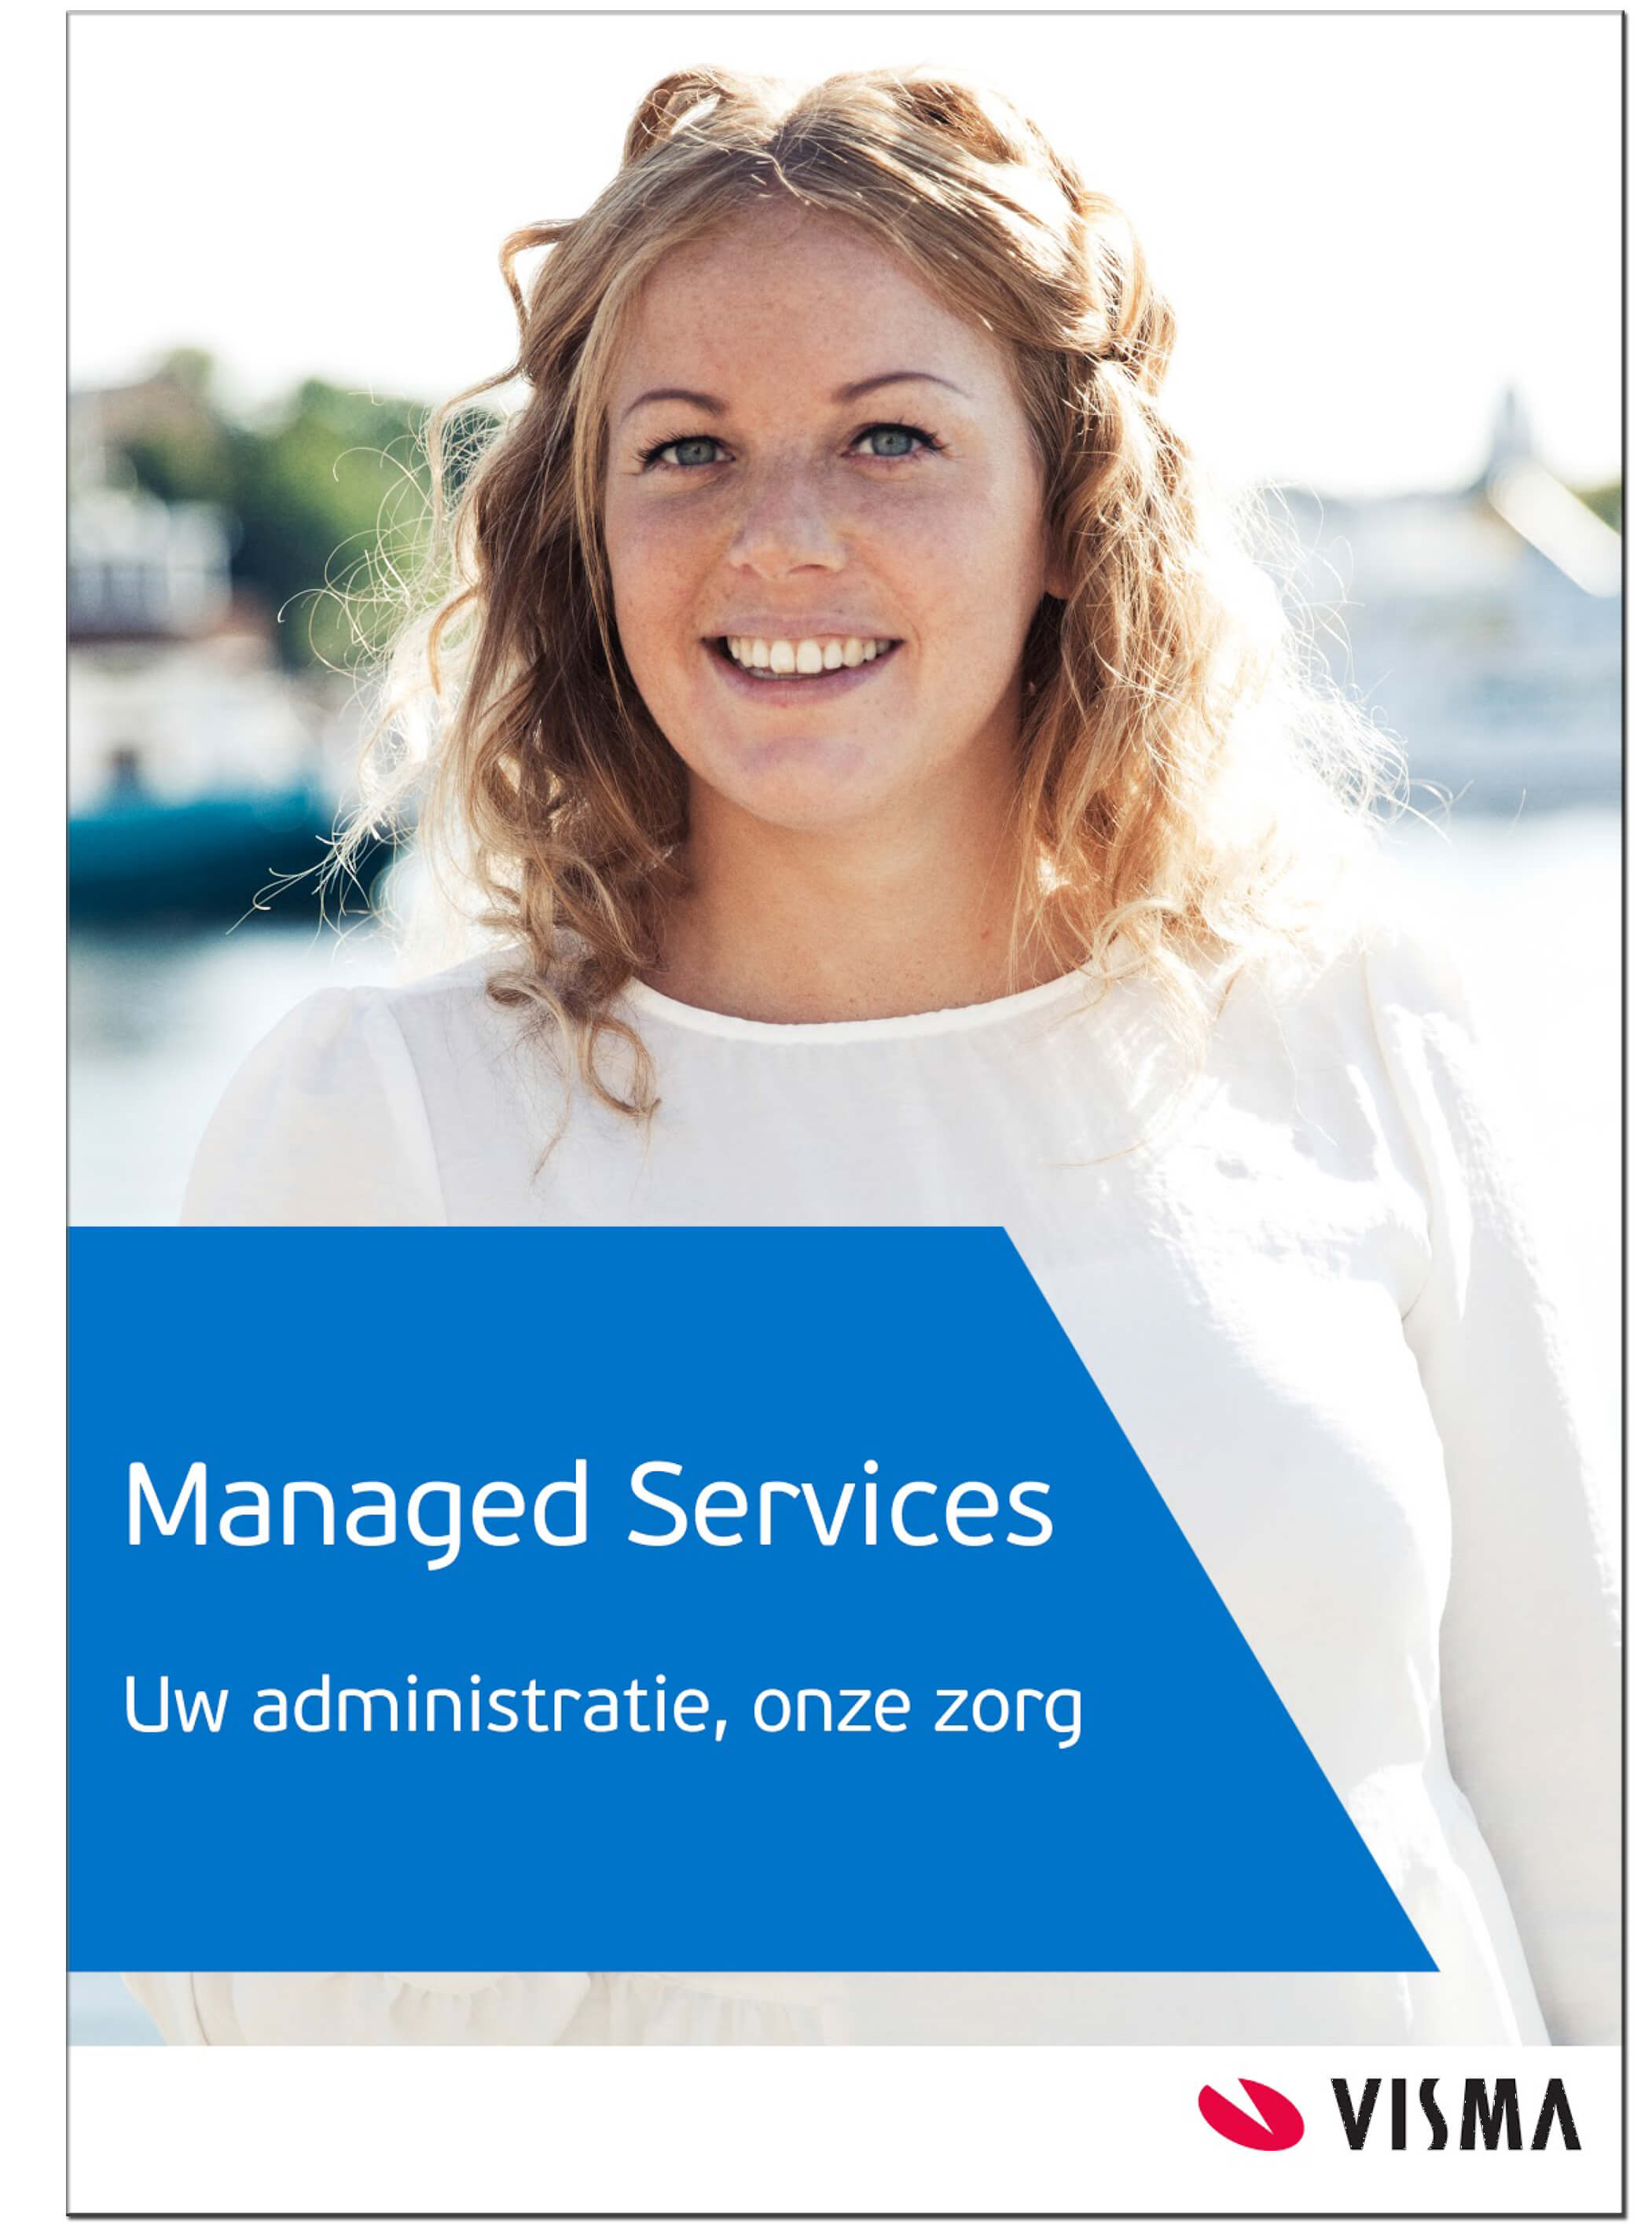 Managed Services - Visma brochure